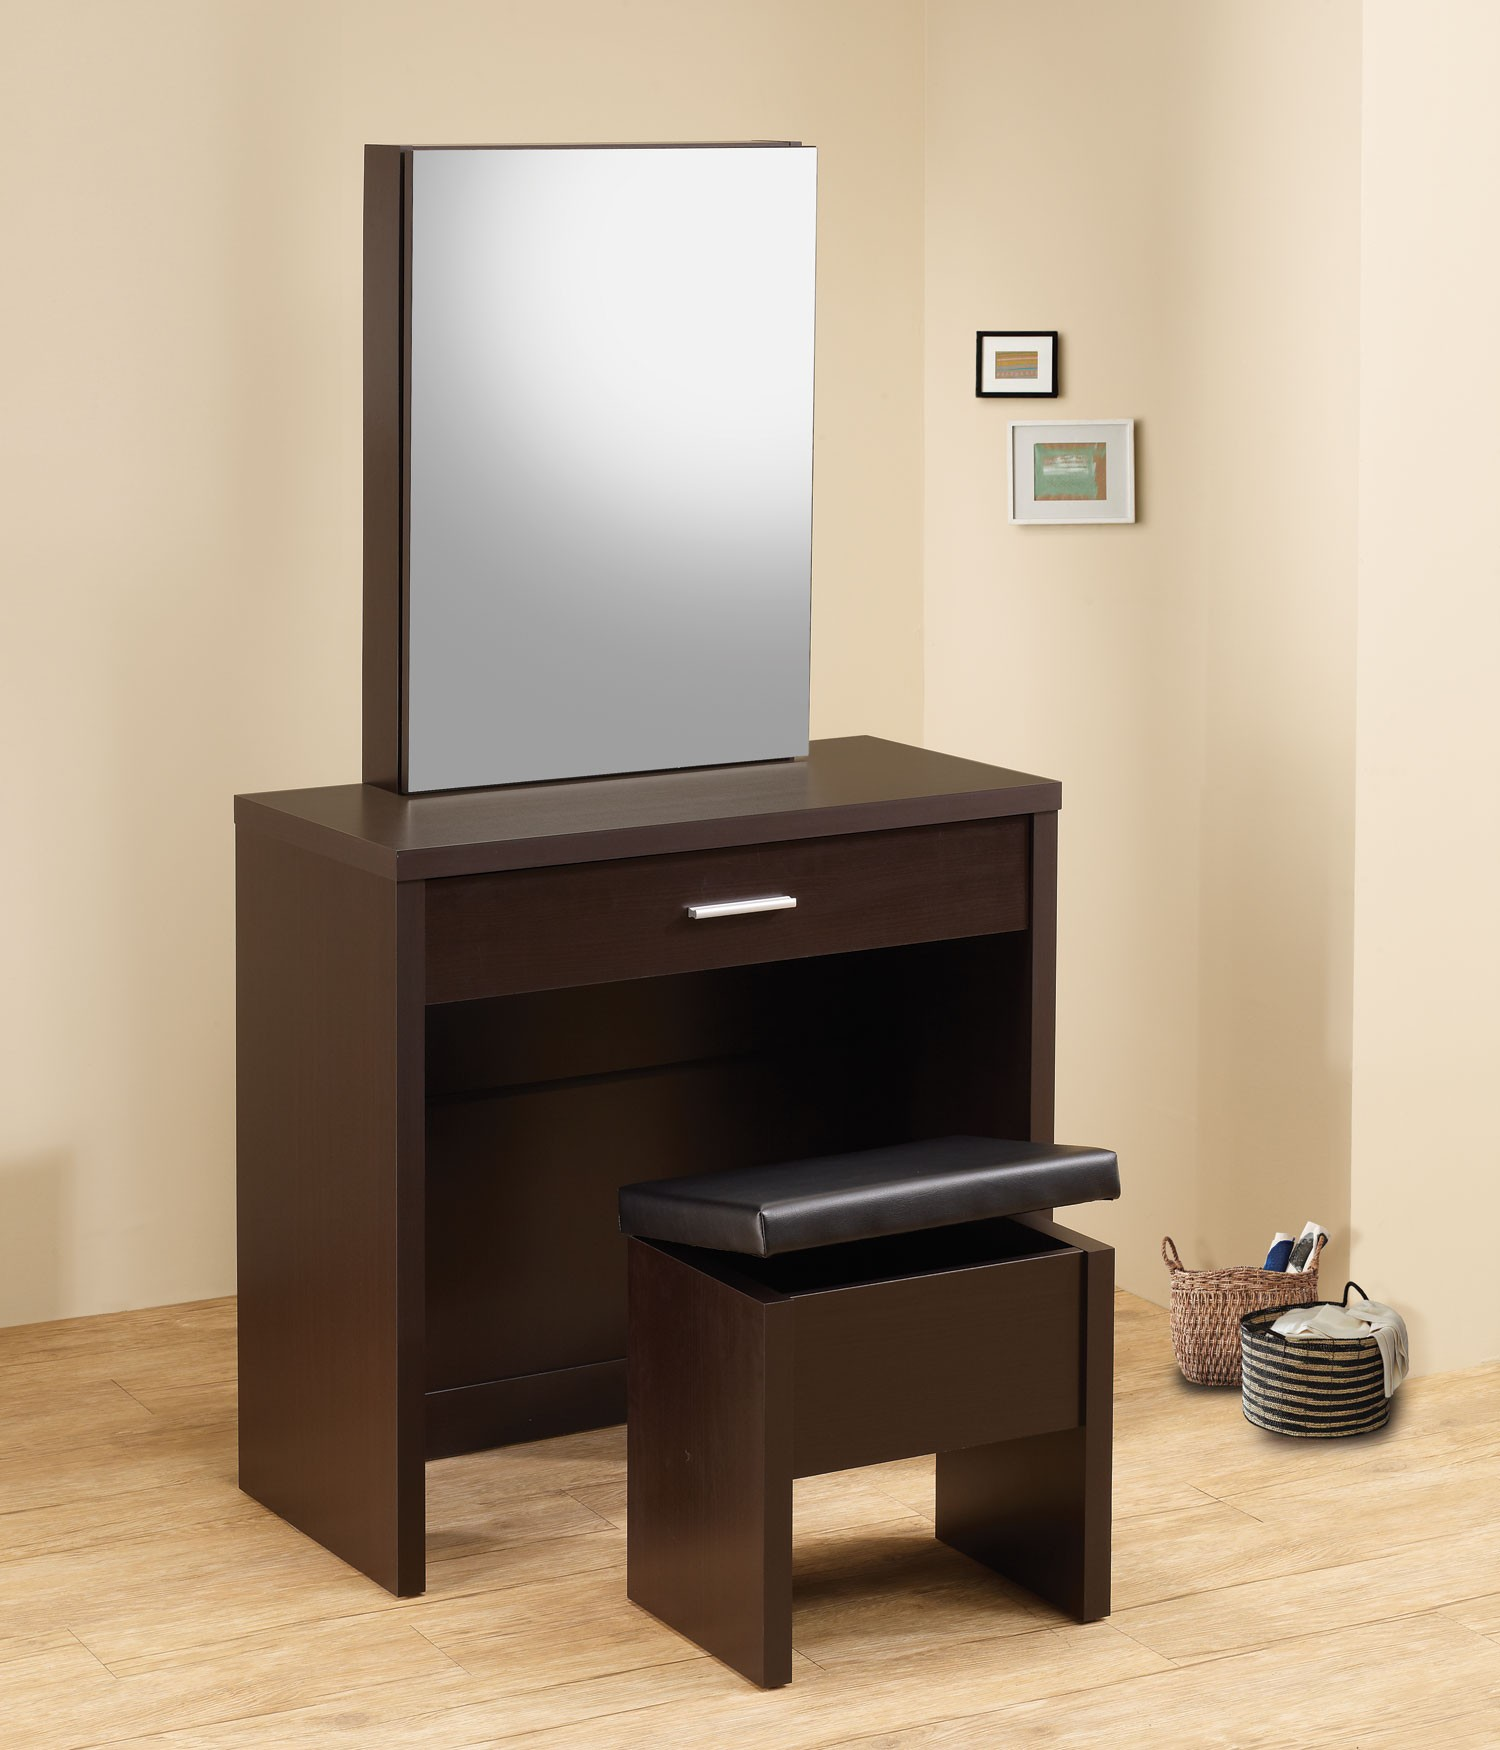 300289 Cappuccino 2 Piece Vanity Set From Coaster (300289) | Coleman  Furniture